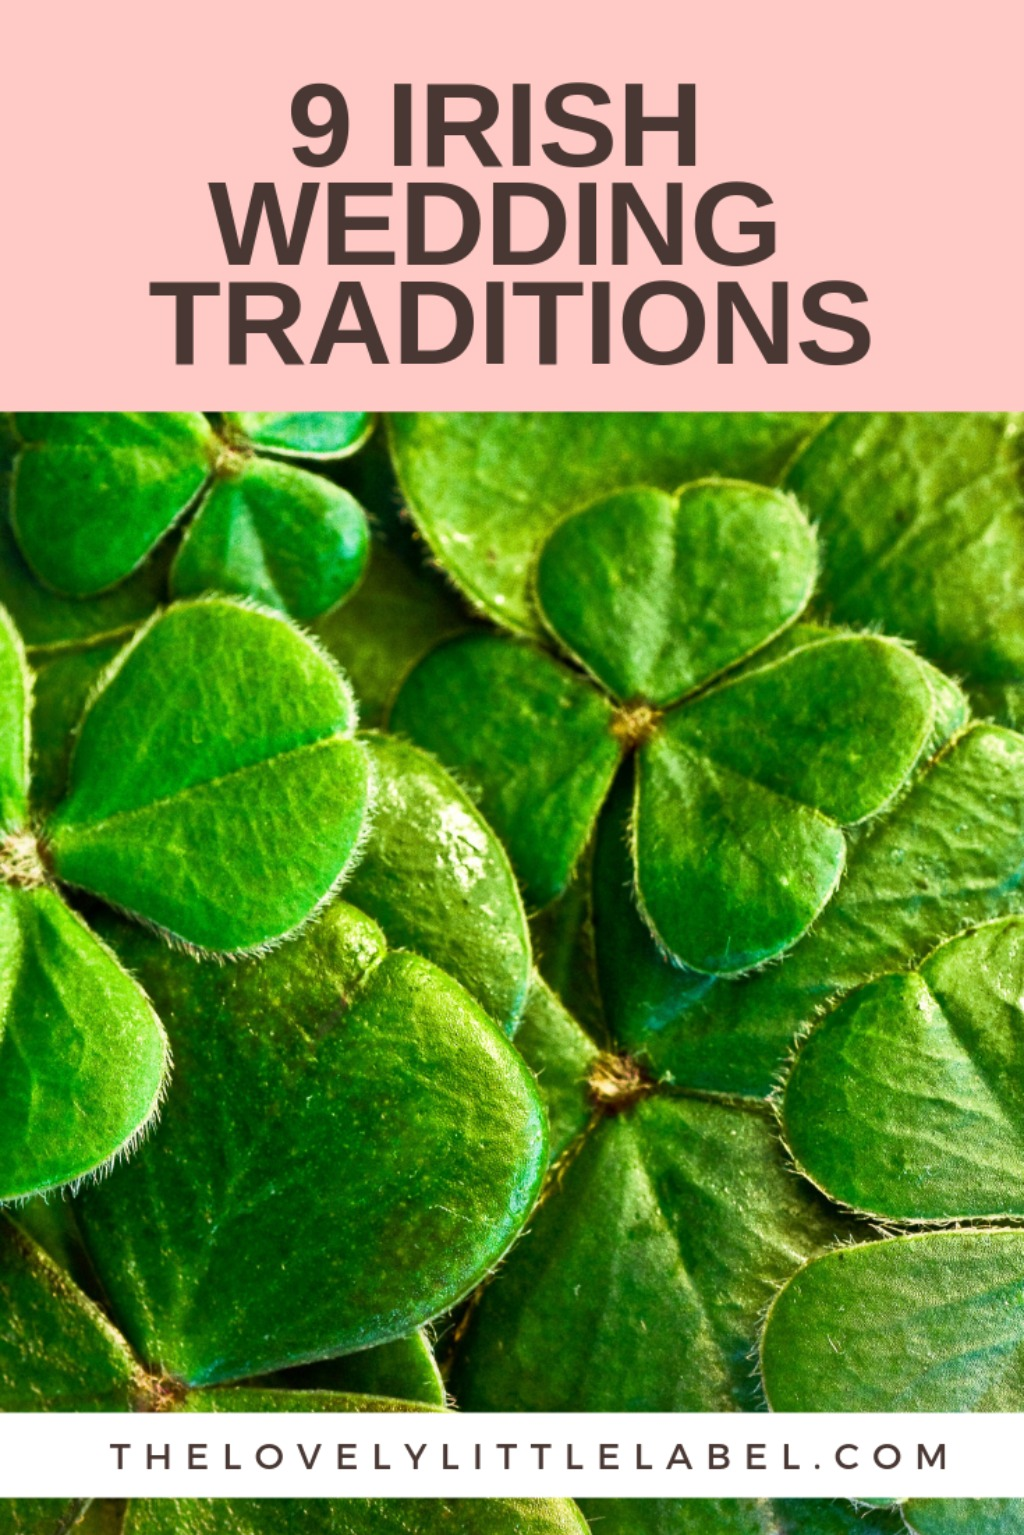 ENSURE YOUR WEDDING DAY HAS PLENTY OF IRISH CHARM BY INCLUDING SOME IRISH WEDDING TRADITIONS THAT HAVE BEEN AROUND FOR CENTURIES. THERE